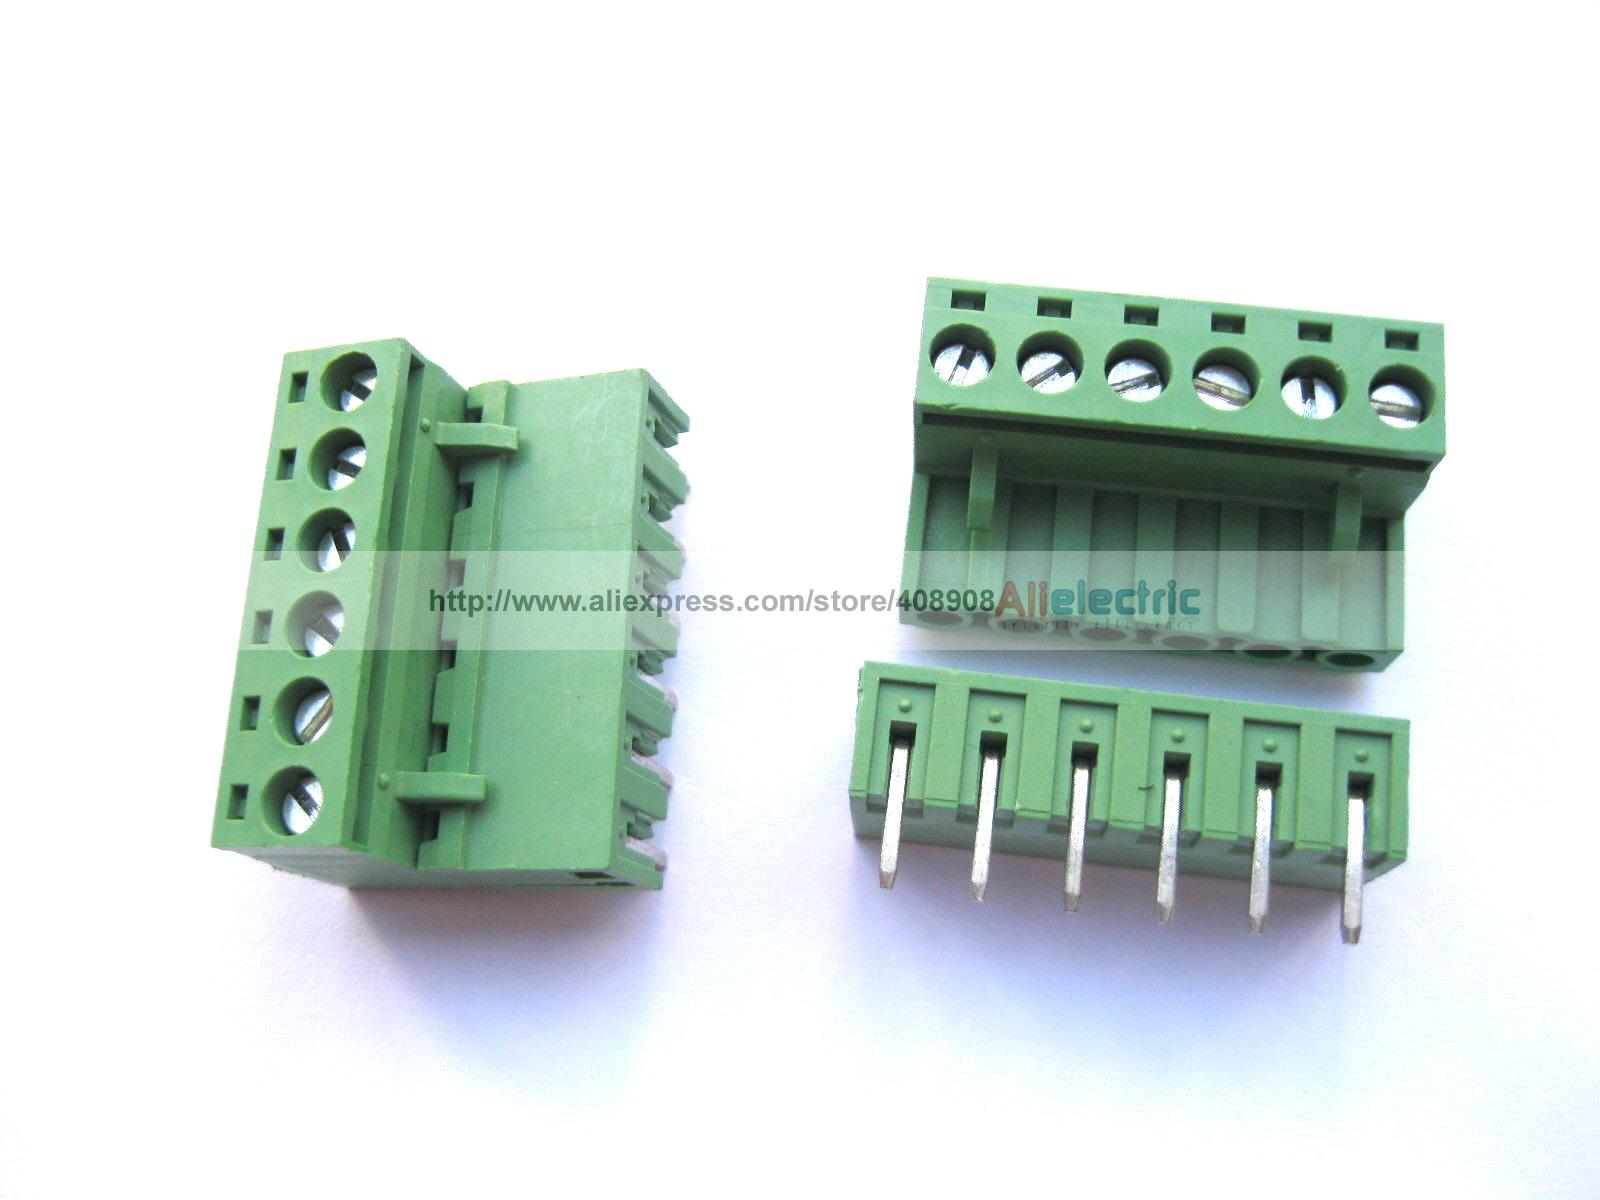 50 Pcs 5.08mm Angle 6 Pin Screw Terminal Block Connector Pluggable Type Green 30 pcs 5 08mm angle 16 pin screw terminal block connector pluggable type green